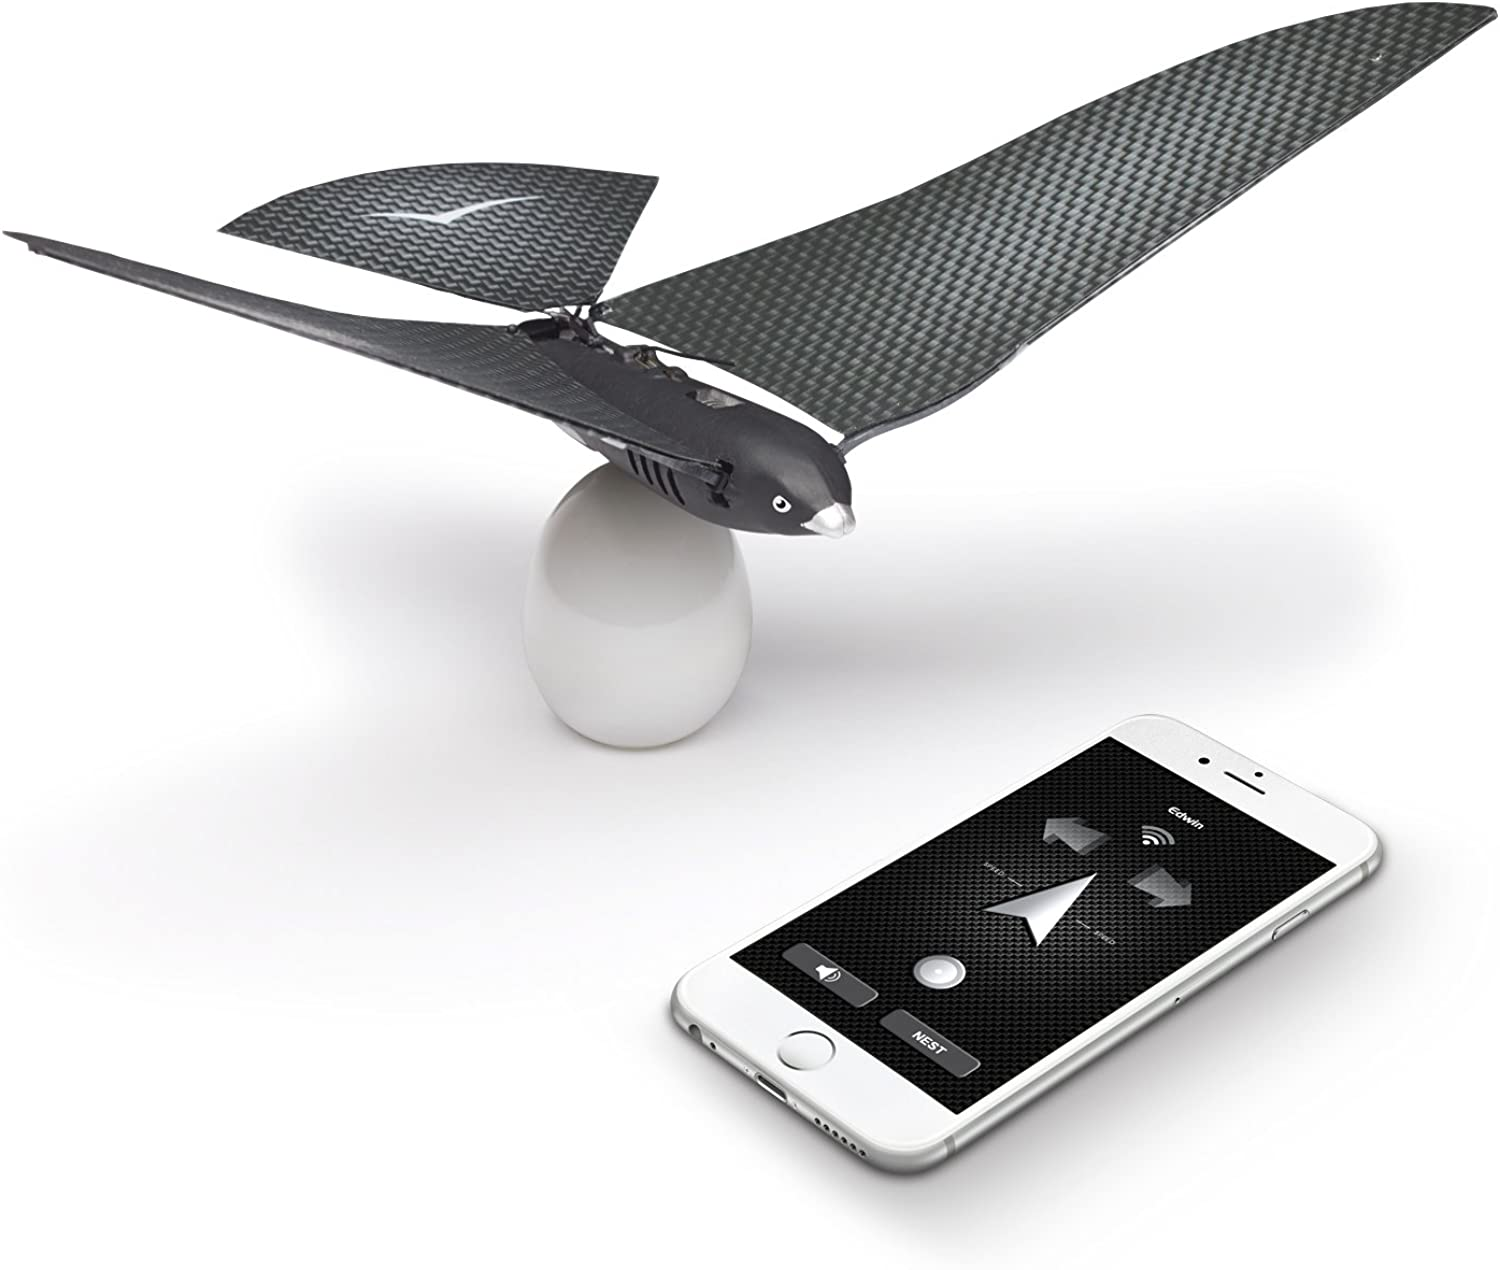 BIONICBIRD THE FLYING APP  PREMIUM PACKAGE  Smart Flying Robot + Egg Charger + Extra pair of wings